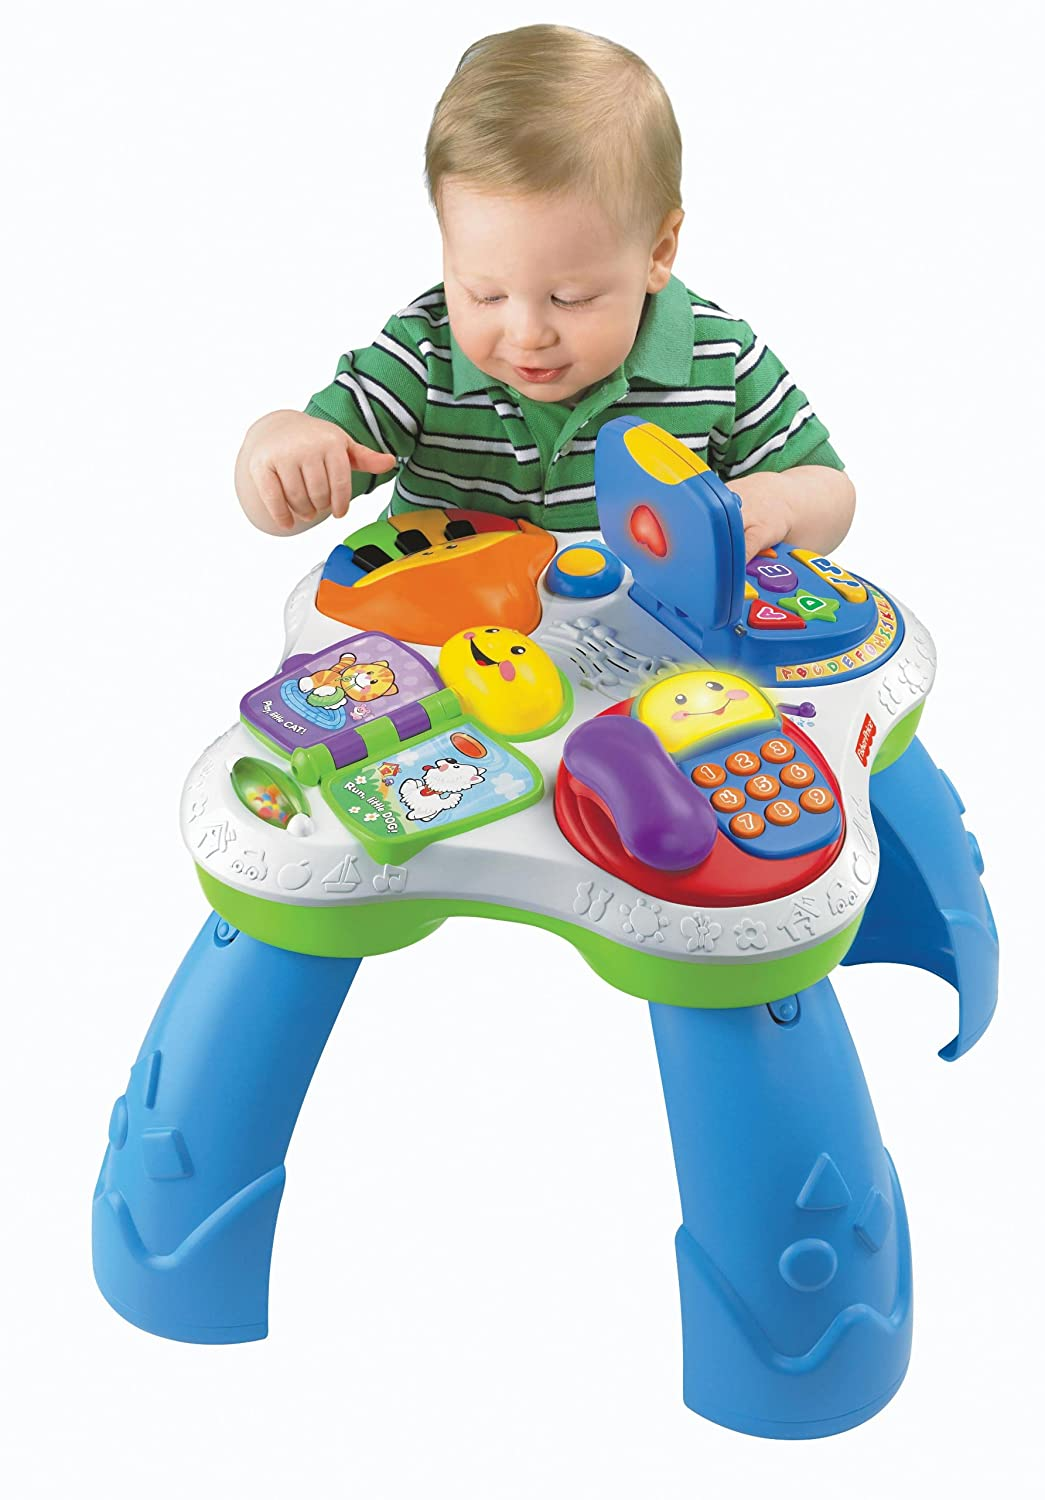 25 Best Educational Toys For Toddlers With Down Syndrome 1